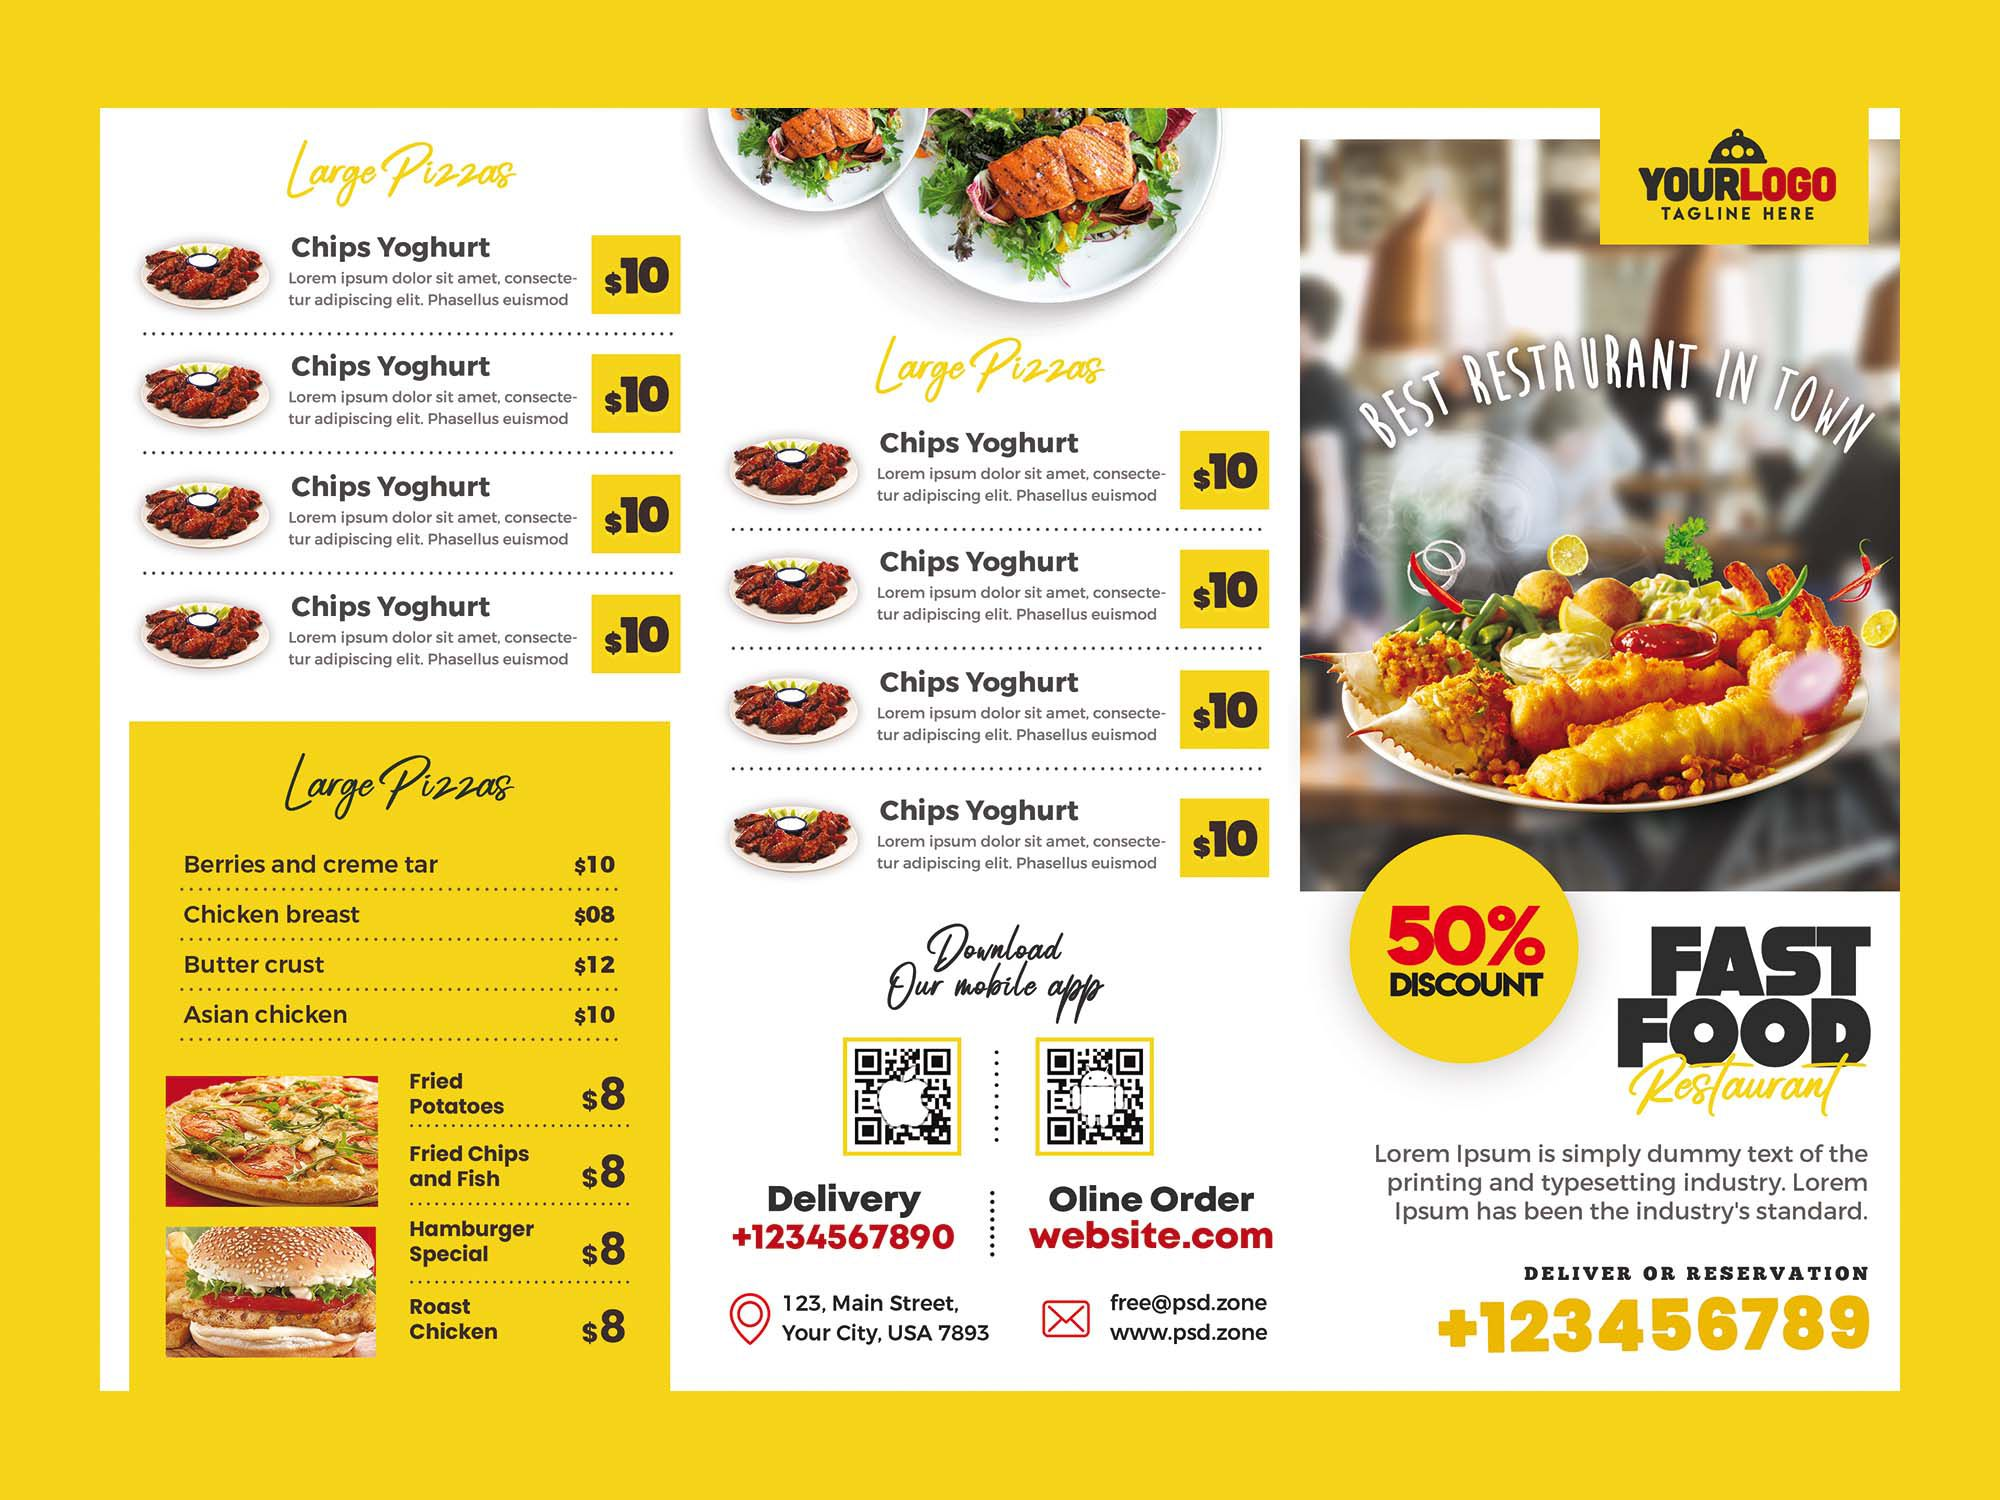 007 Beautiful Tri Fold Menu Template Free Idea  Wedding Tri-fold Restaurant Food Psd Brochure Cafe DownloadFull